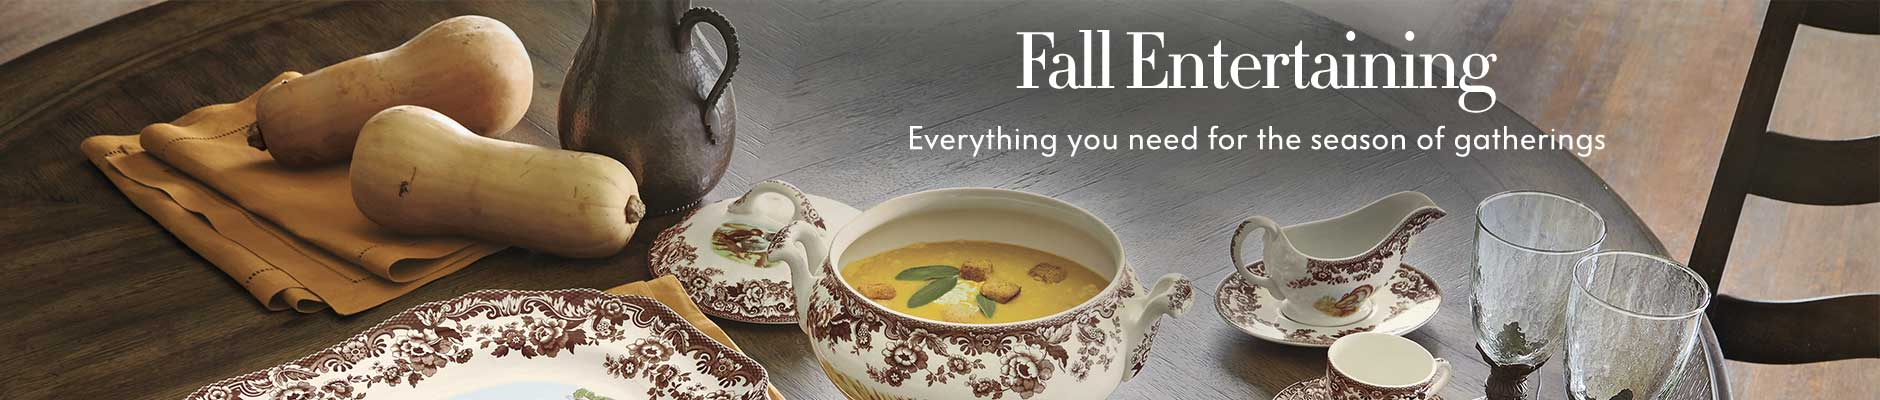 Thanksgiving Entertaining fall & thanksgiving table decor at neiman marcus